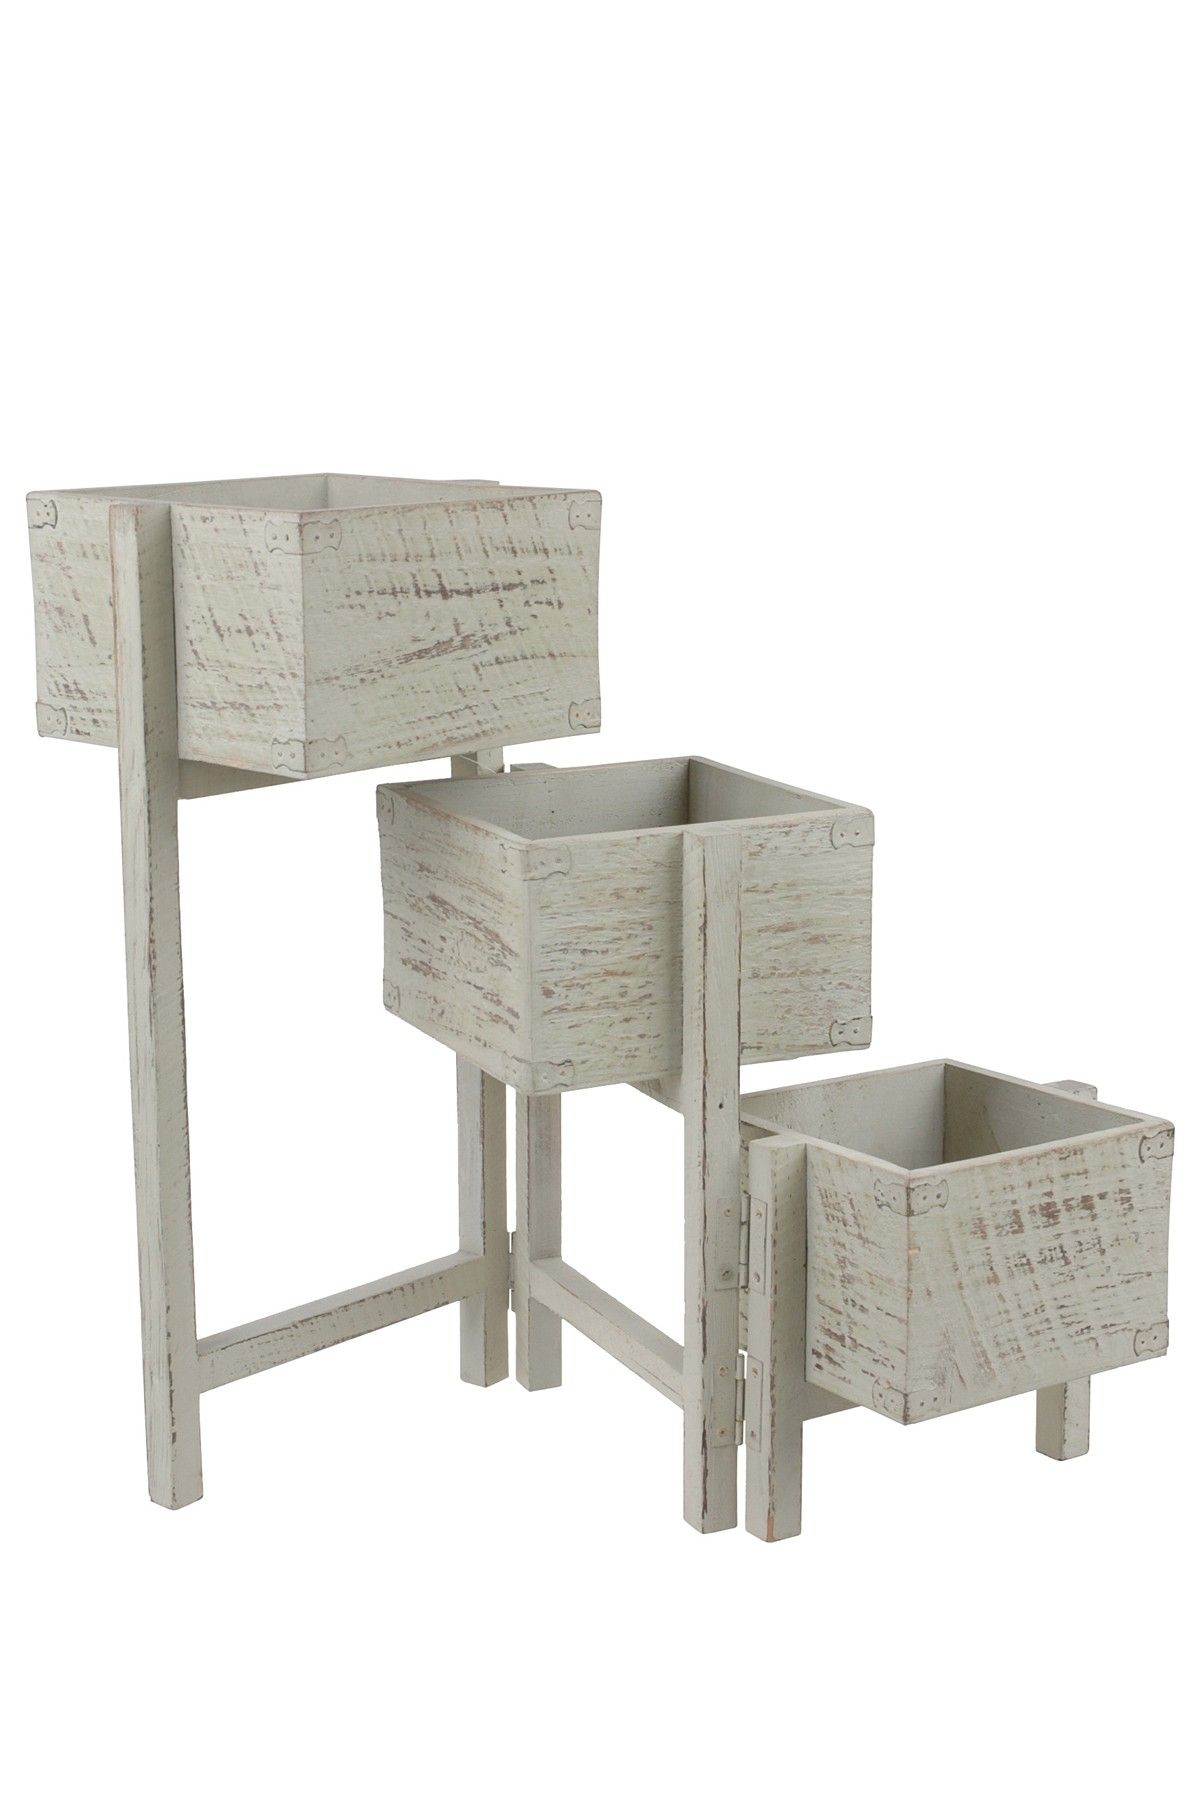 Western Red Cedar Wood TwoTier Plant Stand The by MadeInFarmington ...